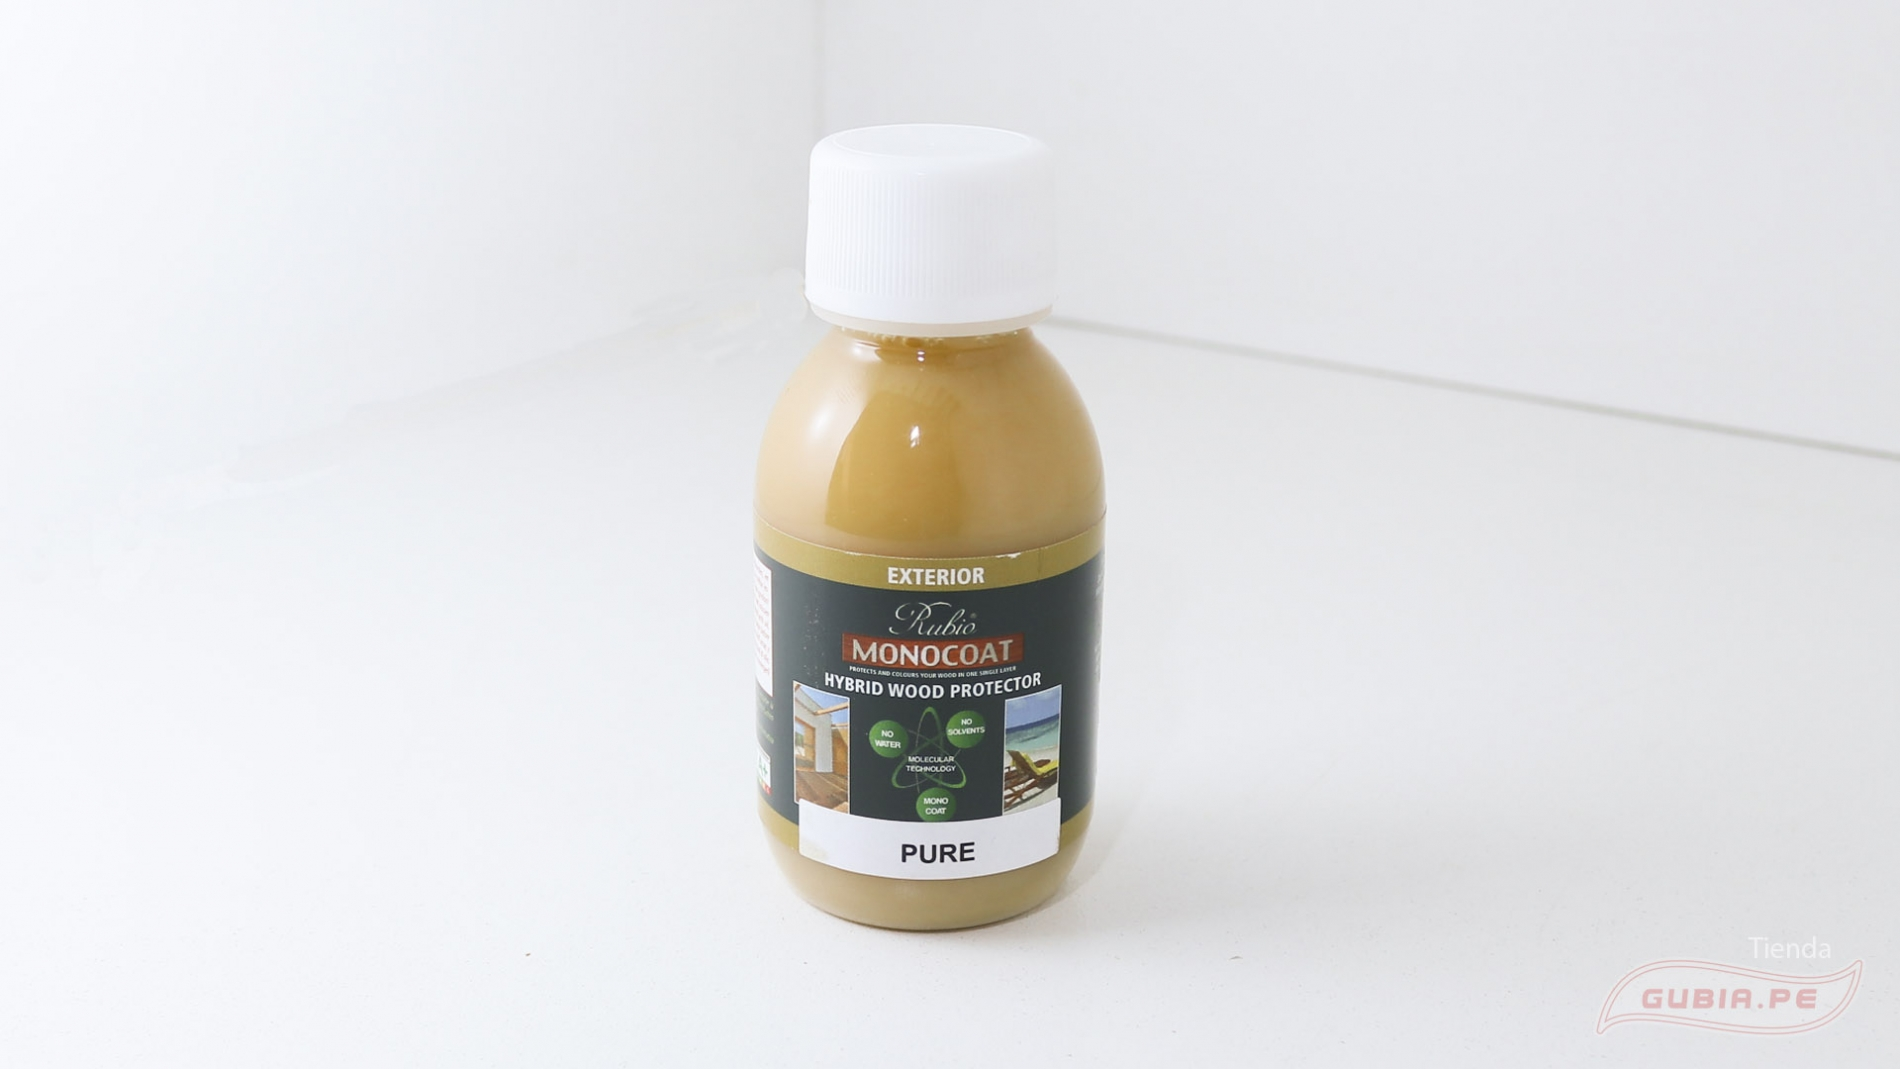 5410761118077-Pure Exterior Hybrid Wood Protector (100ml) RMC-max-1.